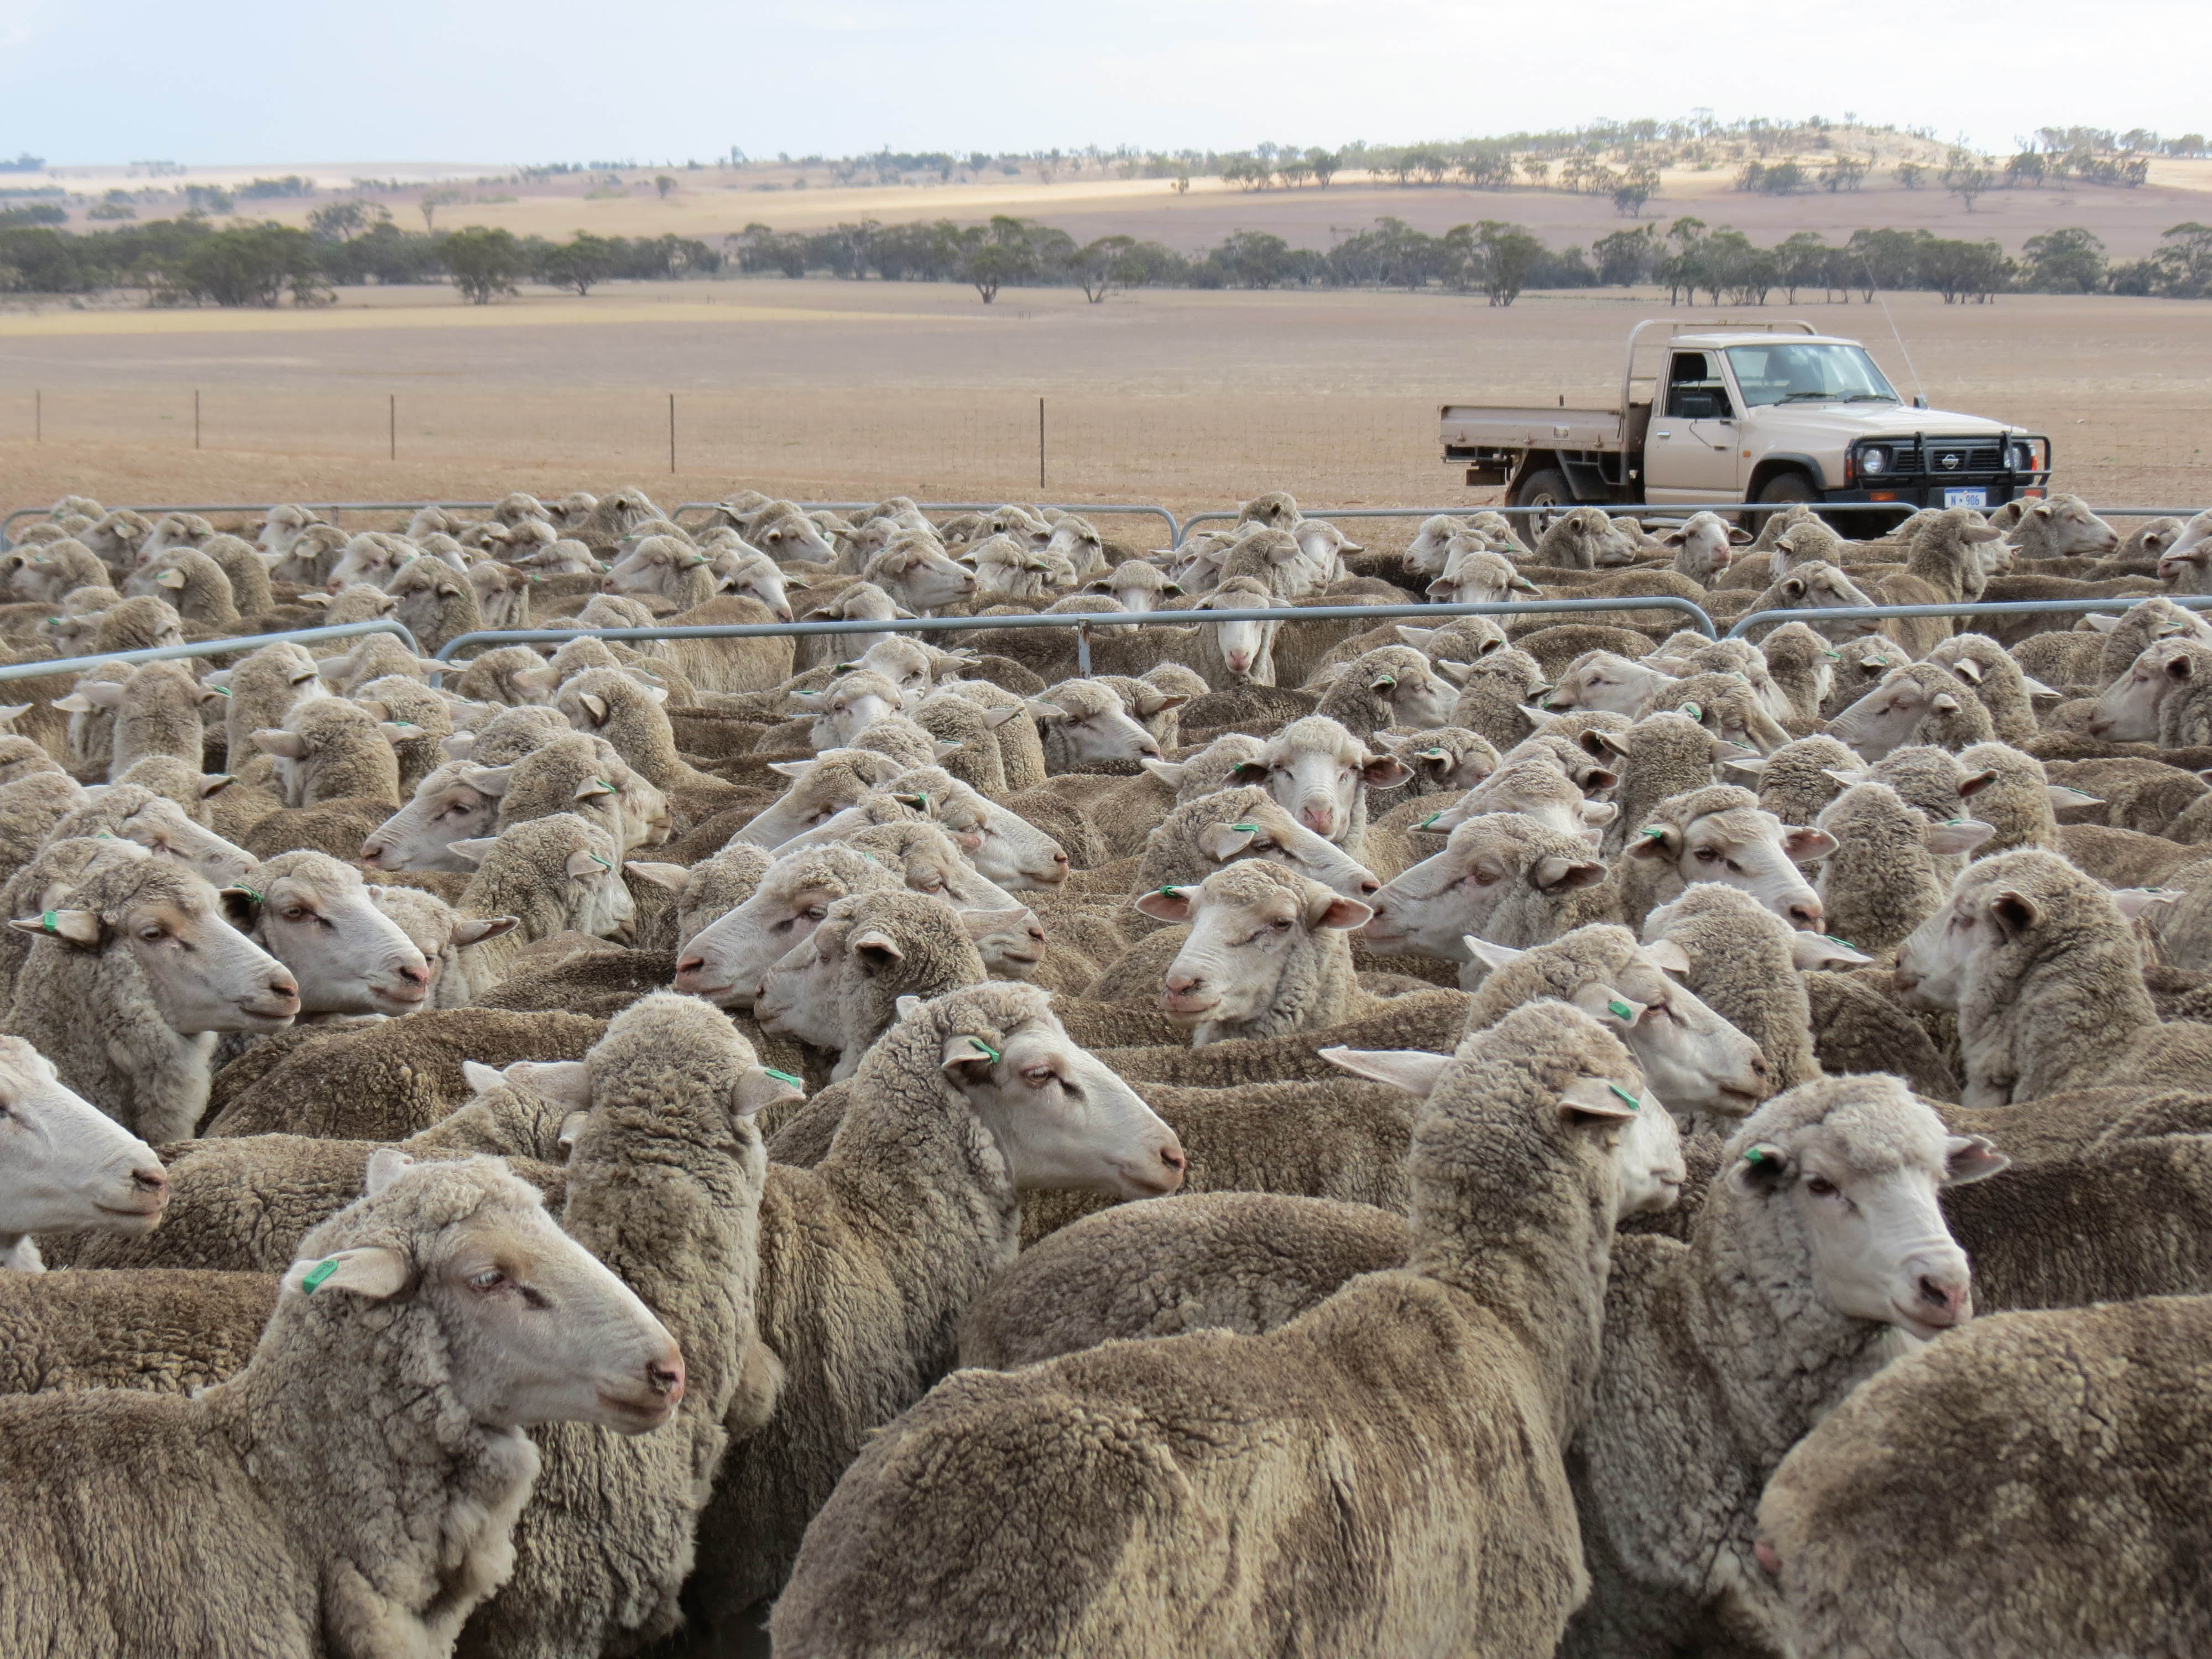 Workshops to help sheep producers detect livestock diseases